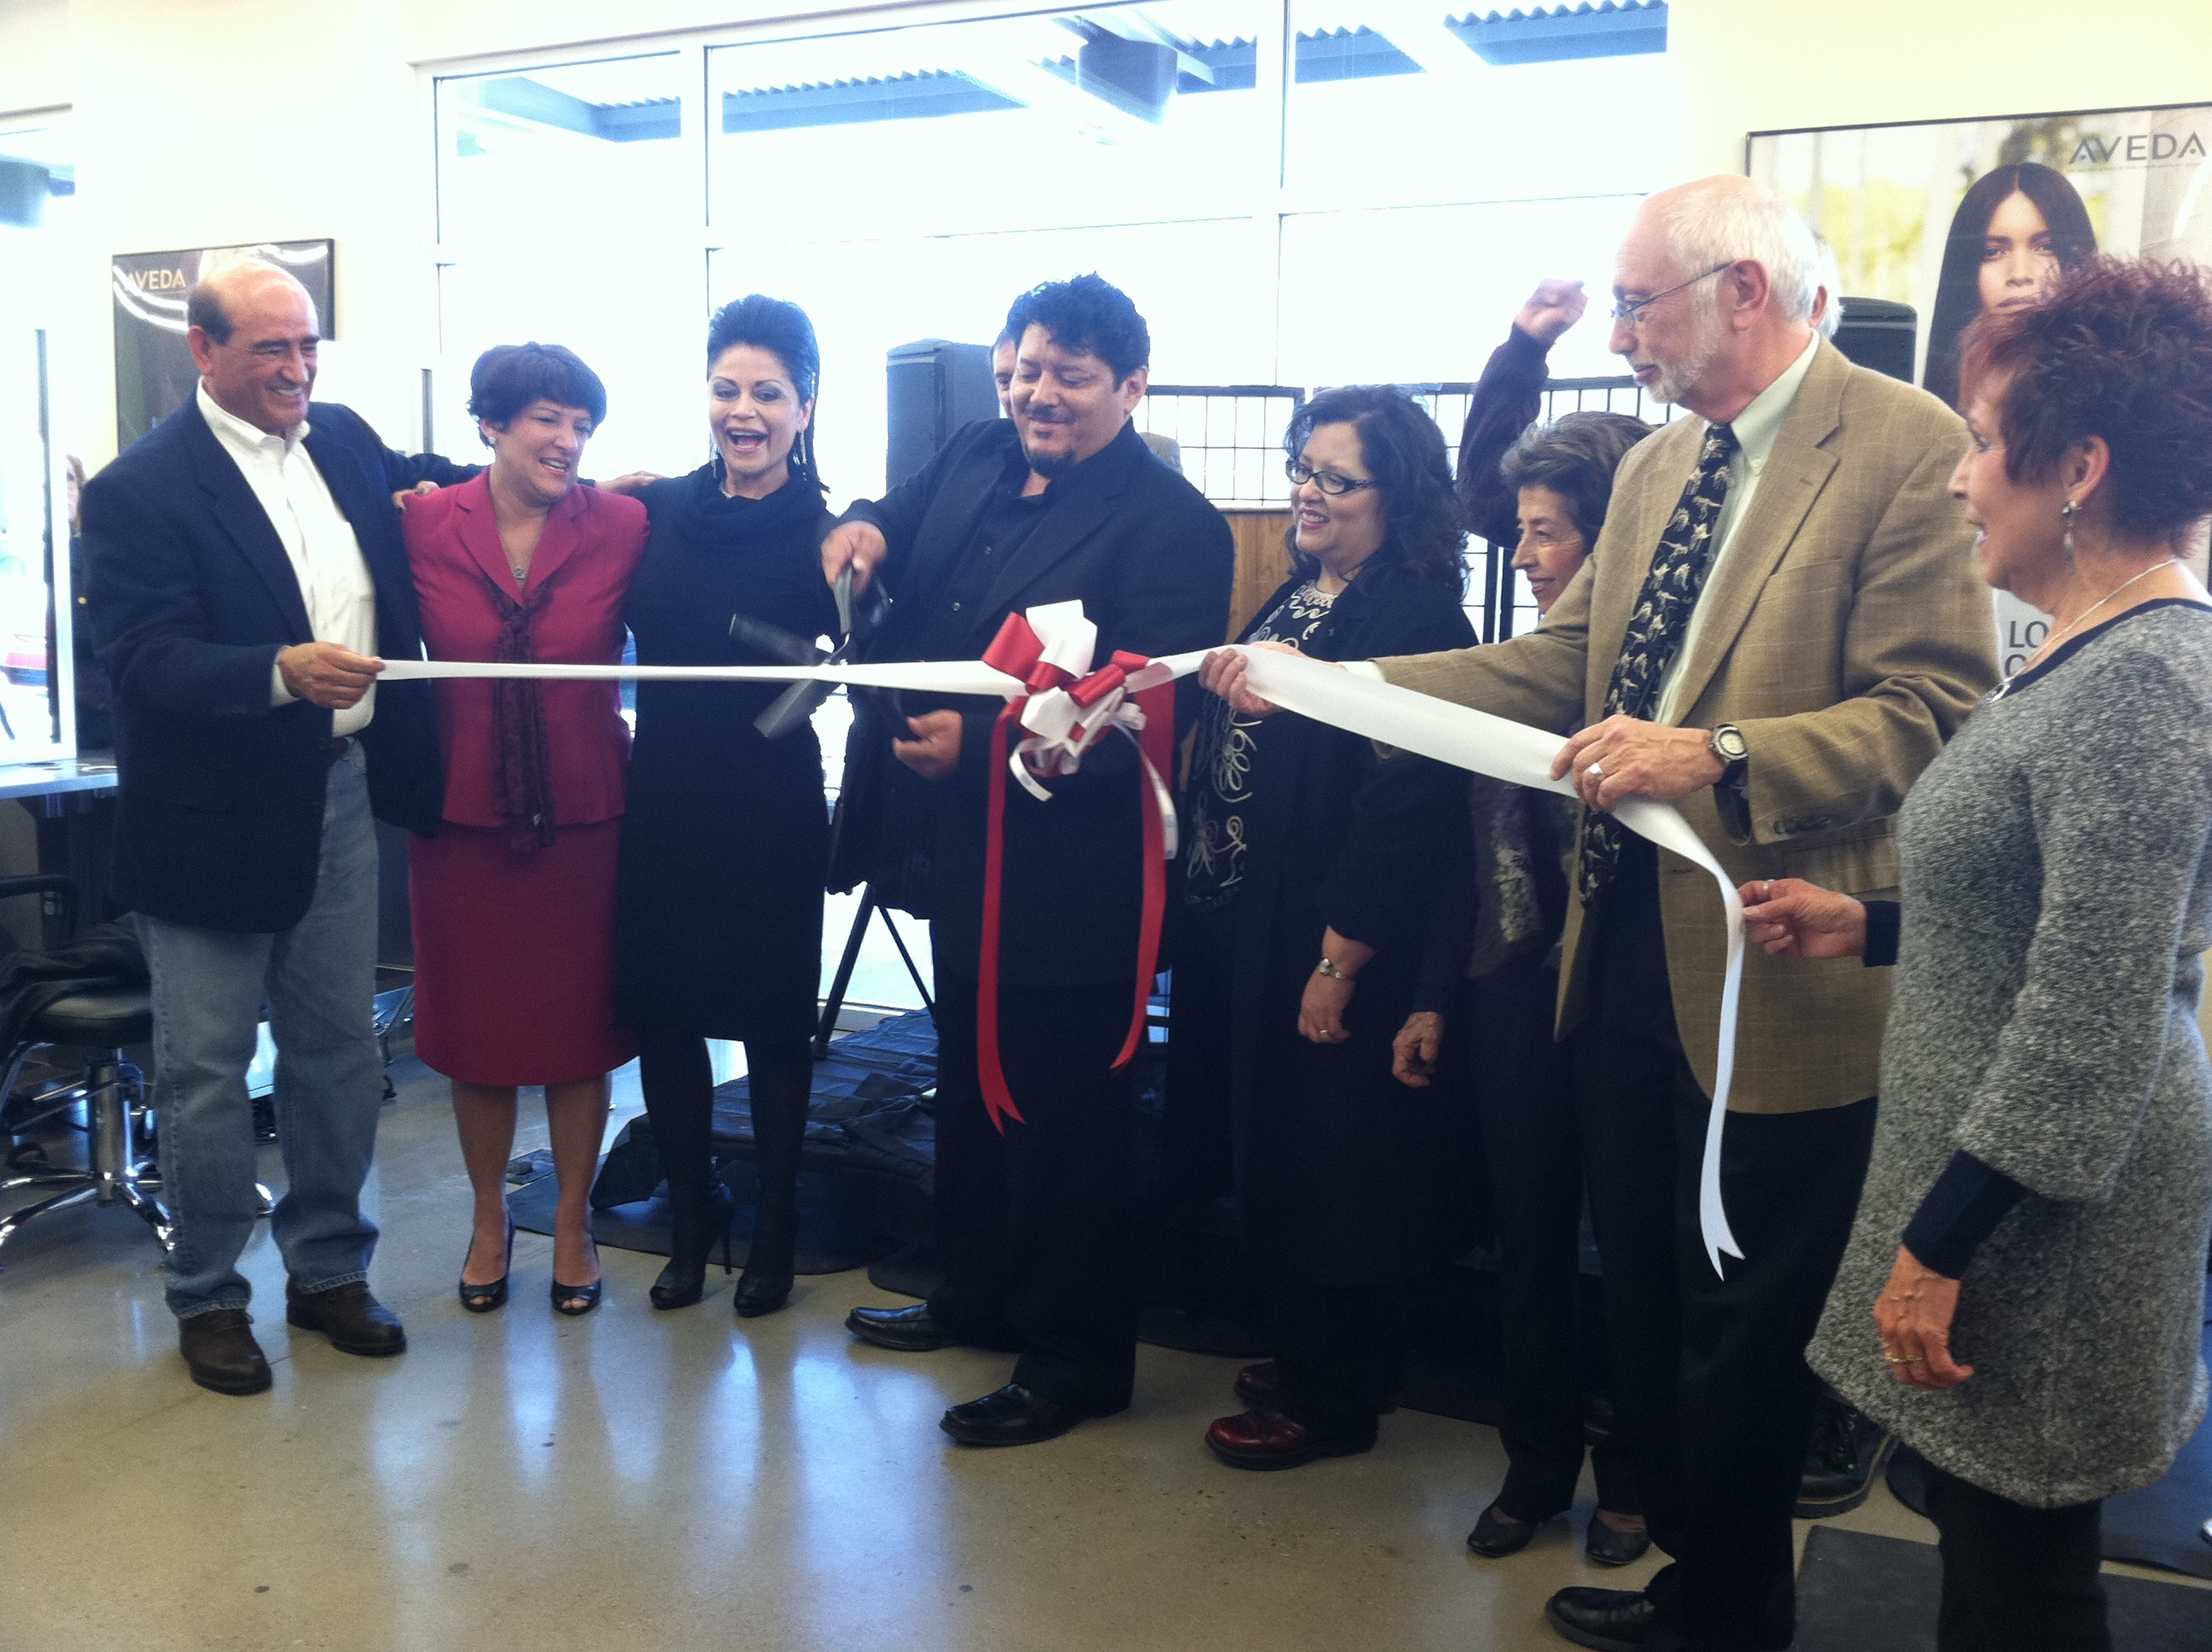 Mark Pardo Gonzales Aveda Institute New Mexico Owner At Ribbon Cutting